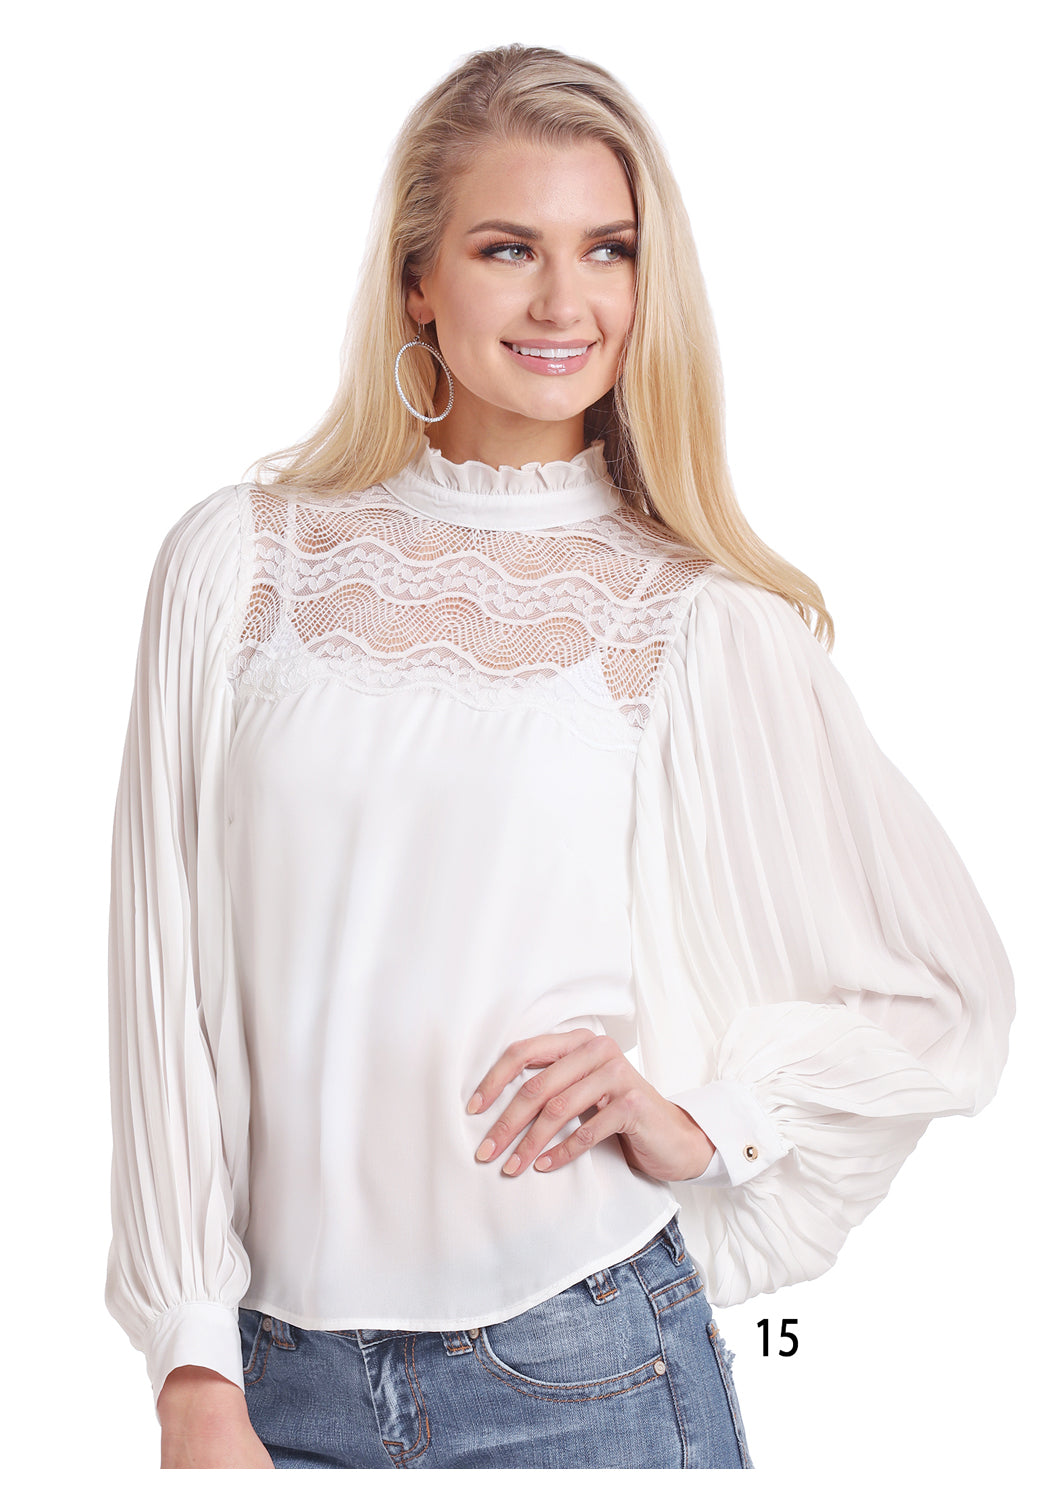 Panhandle White Lace Women's Blouse